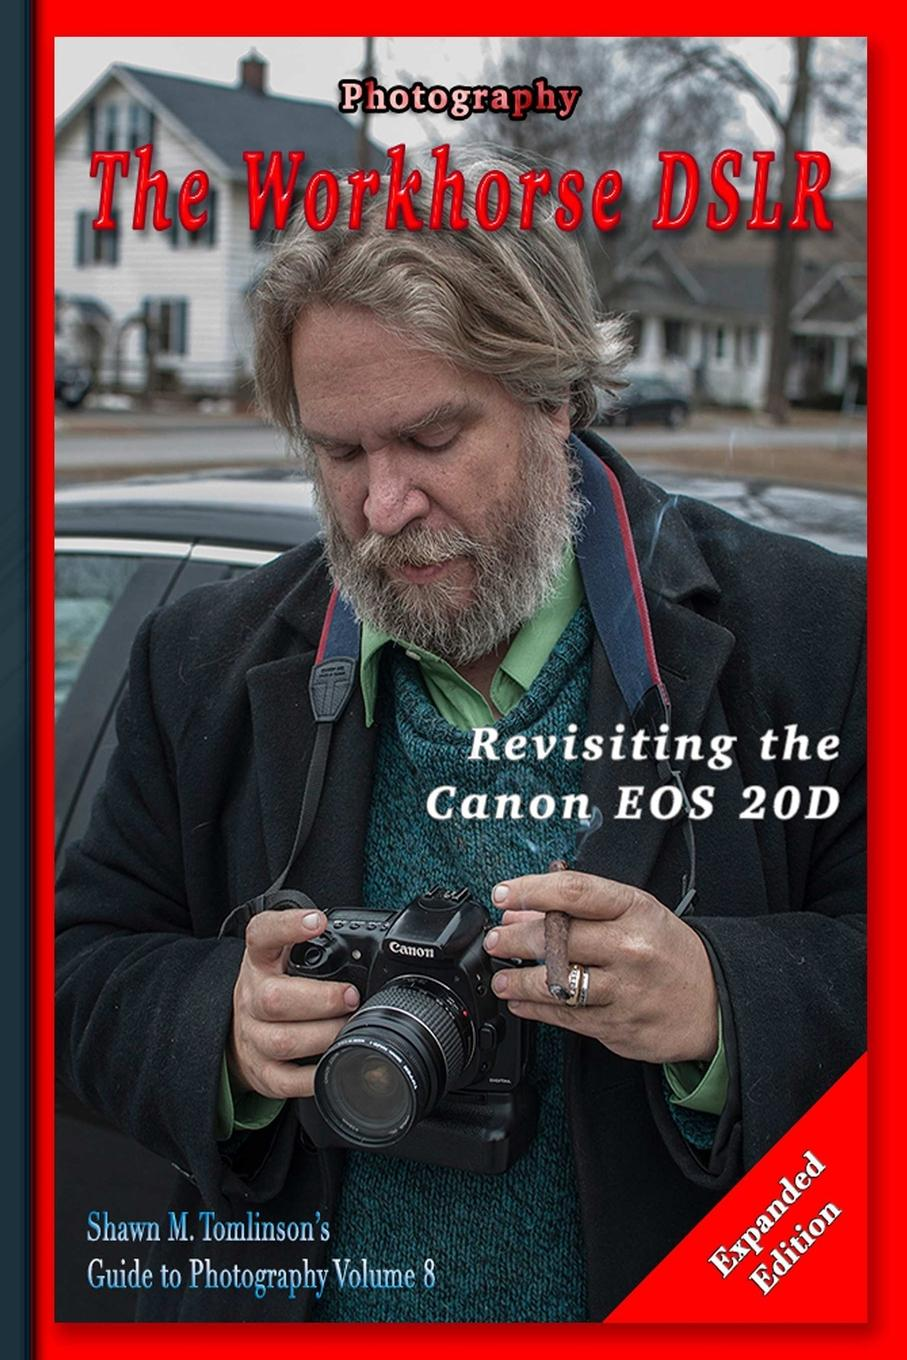 Фото - Shawn M. Tomlinson Photography. The Workhorse DSLR: Revisiting the Canon EOS 20D Expanded Edition hj8108 90t brushless gimbal motor for dslr red epic camera fpv aerial photography